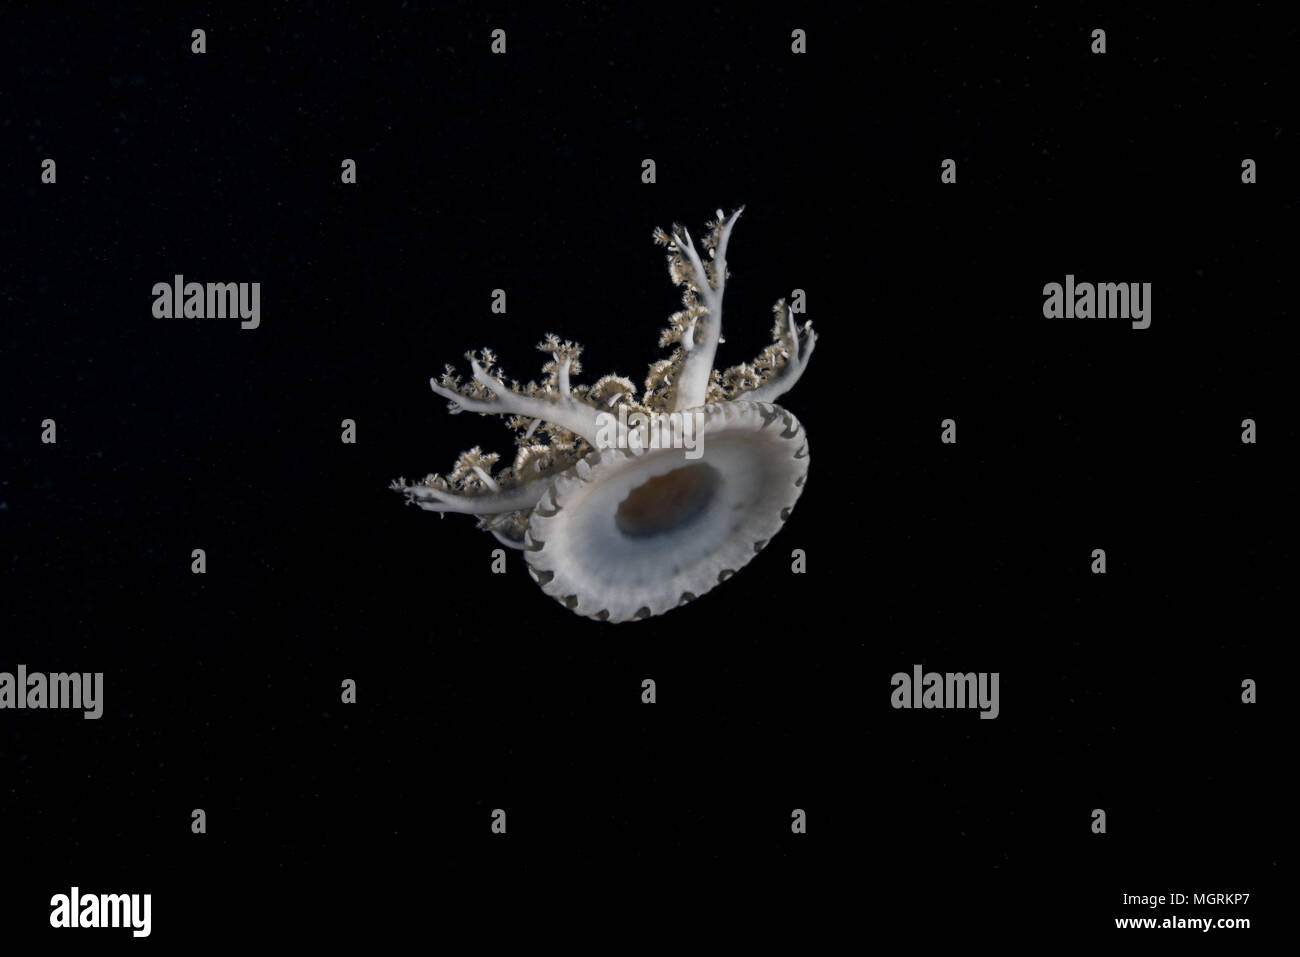 Upside Down Jellyfish (Cassiopea andromeda) in the night - Stock Image